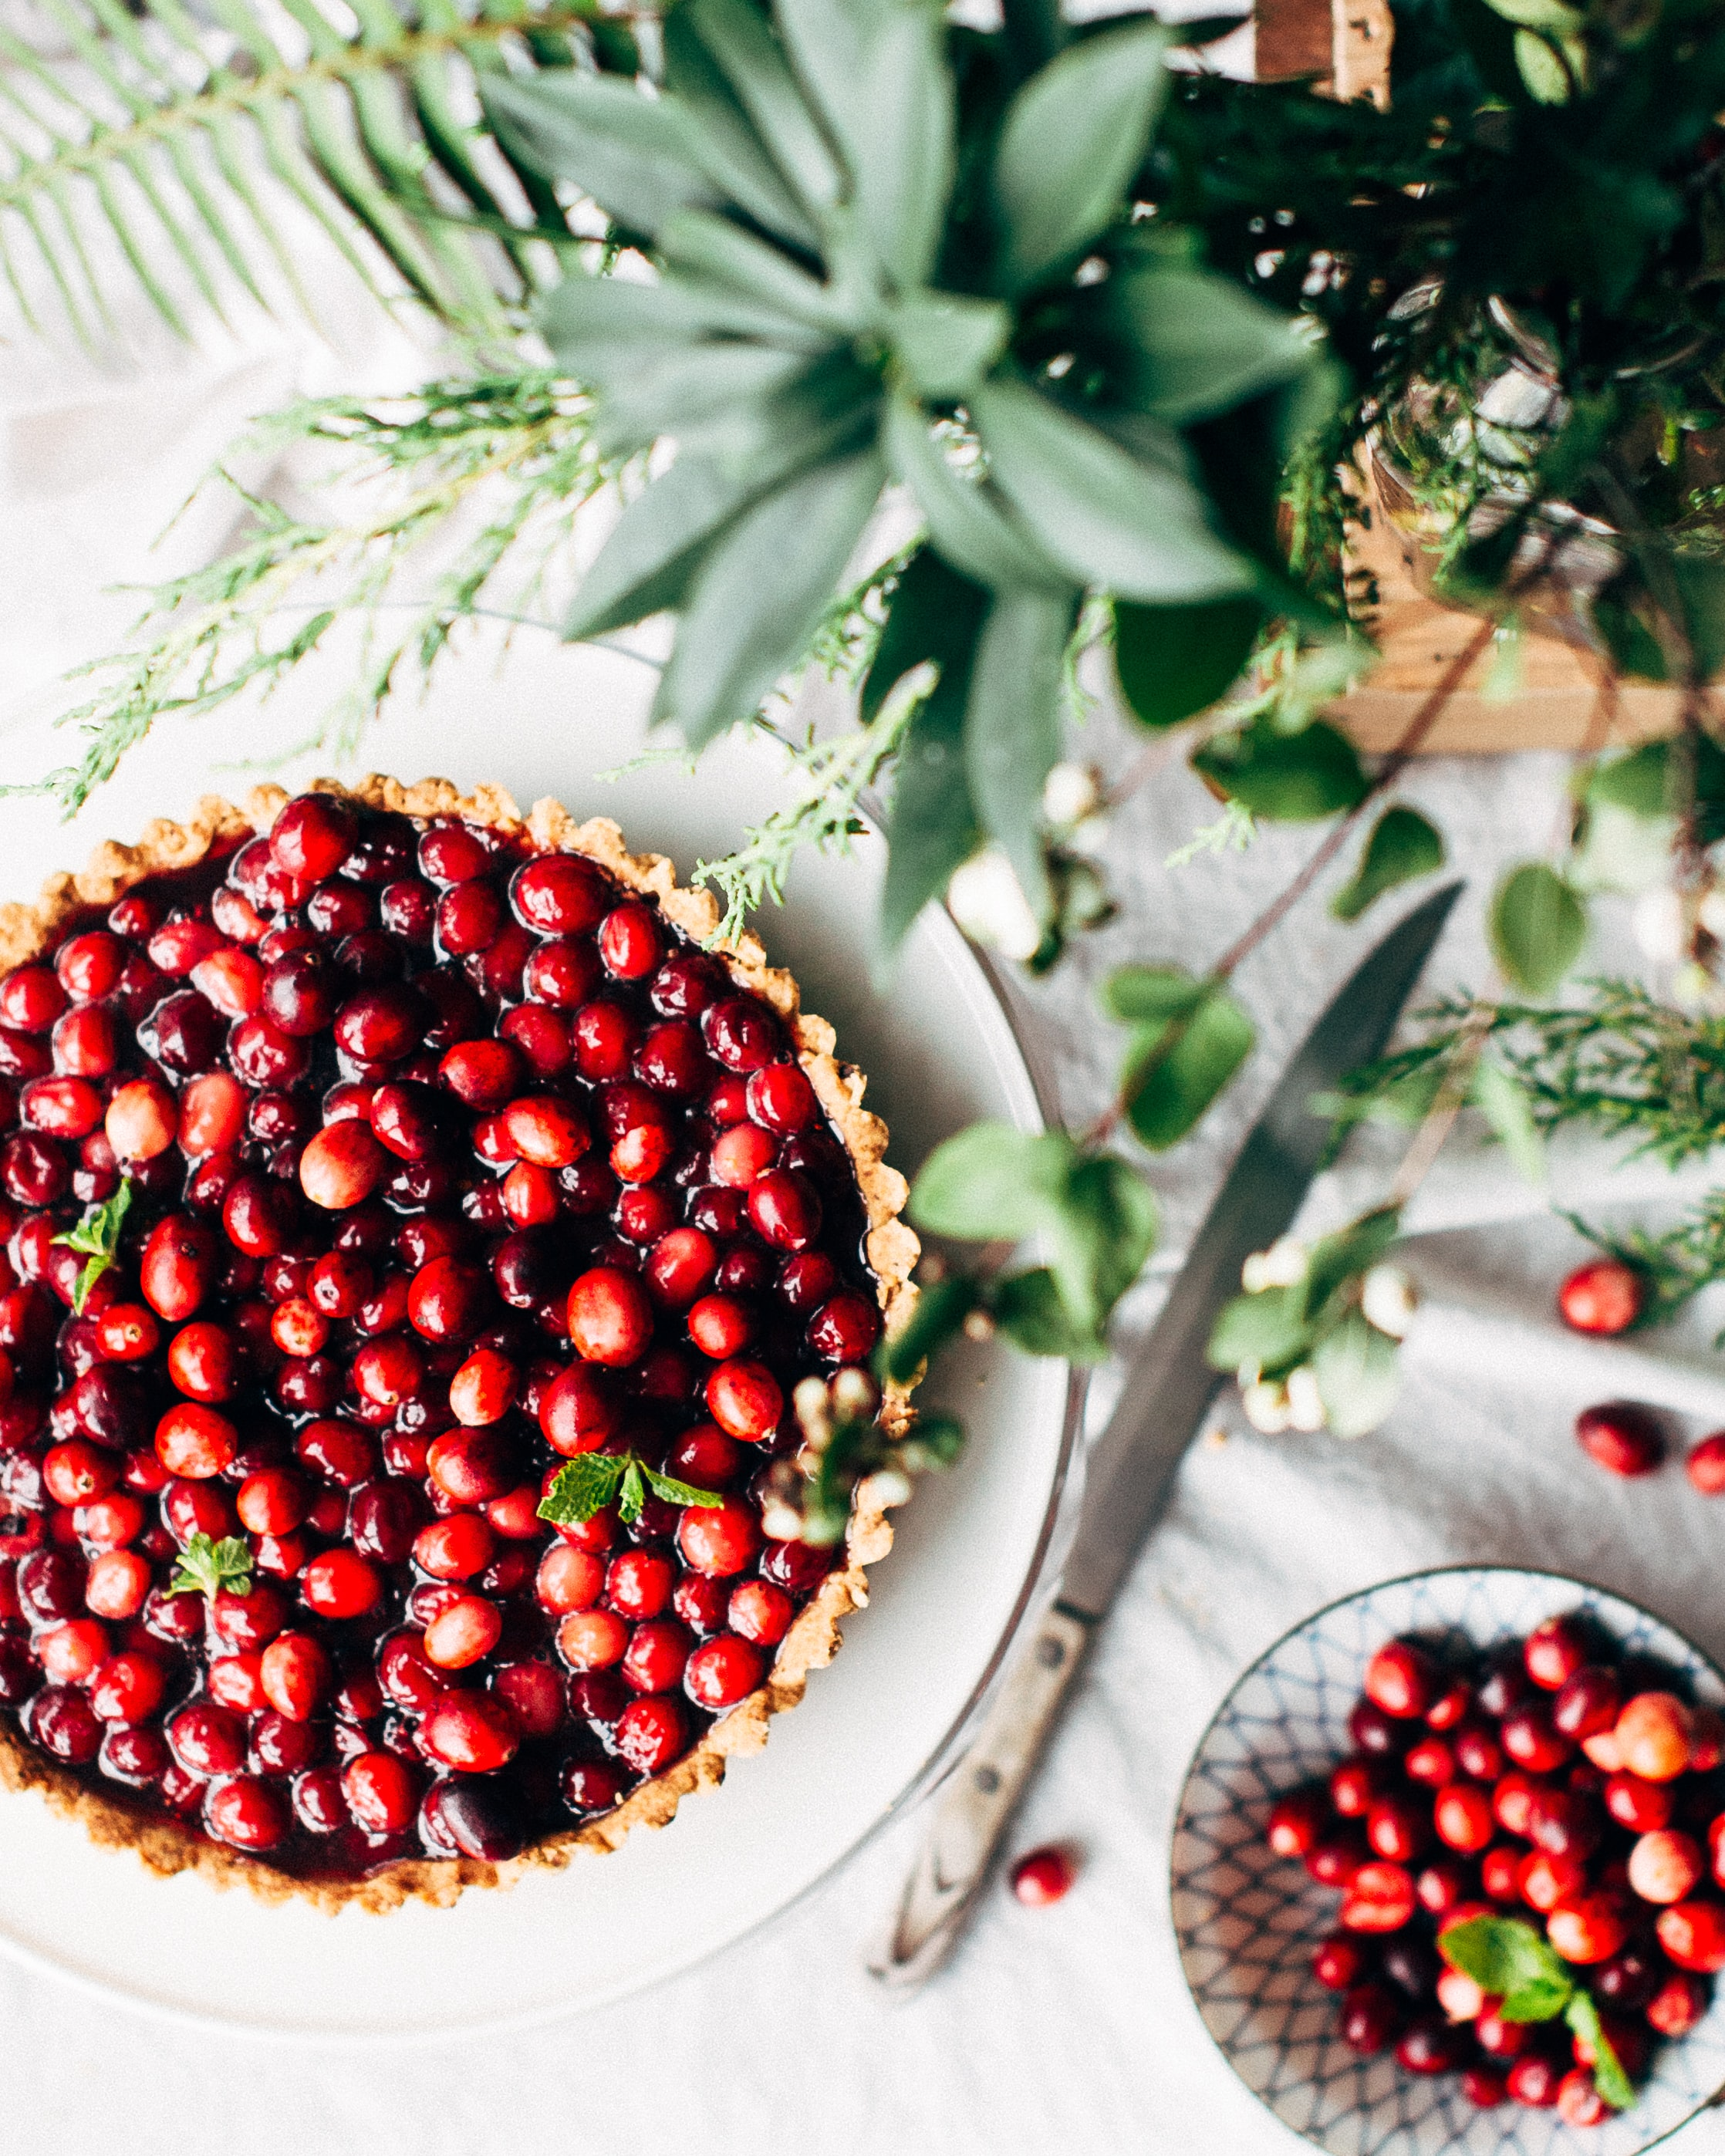 Fresh cranberries in a homemade pie crust with berry garnish